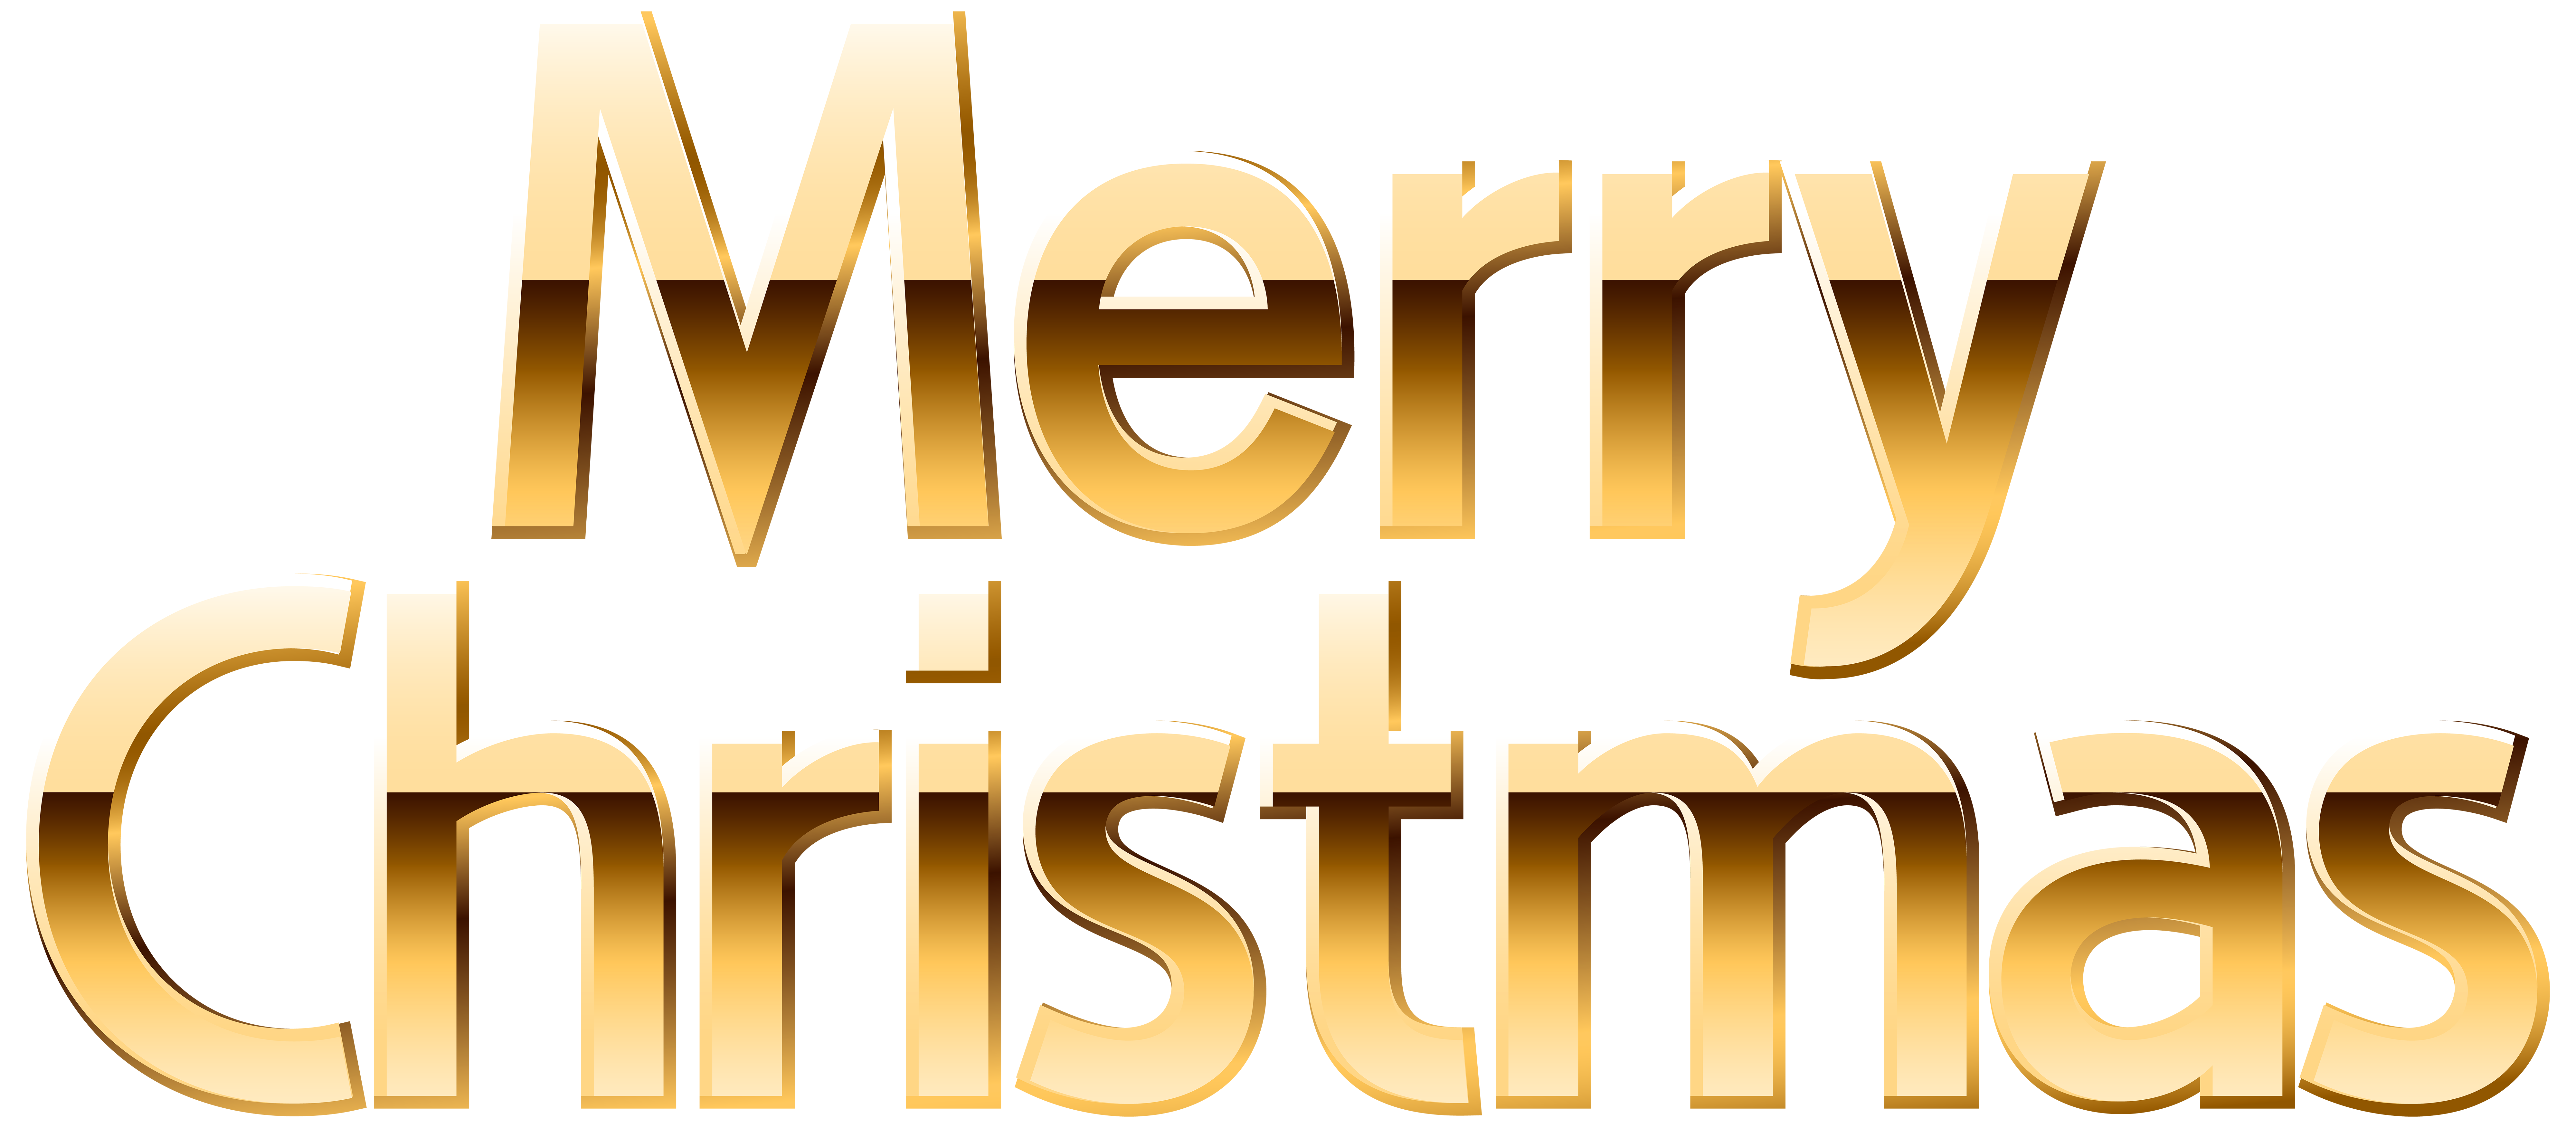 Merry christmas gold png. Clip art image gallery